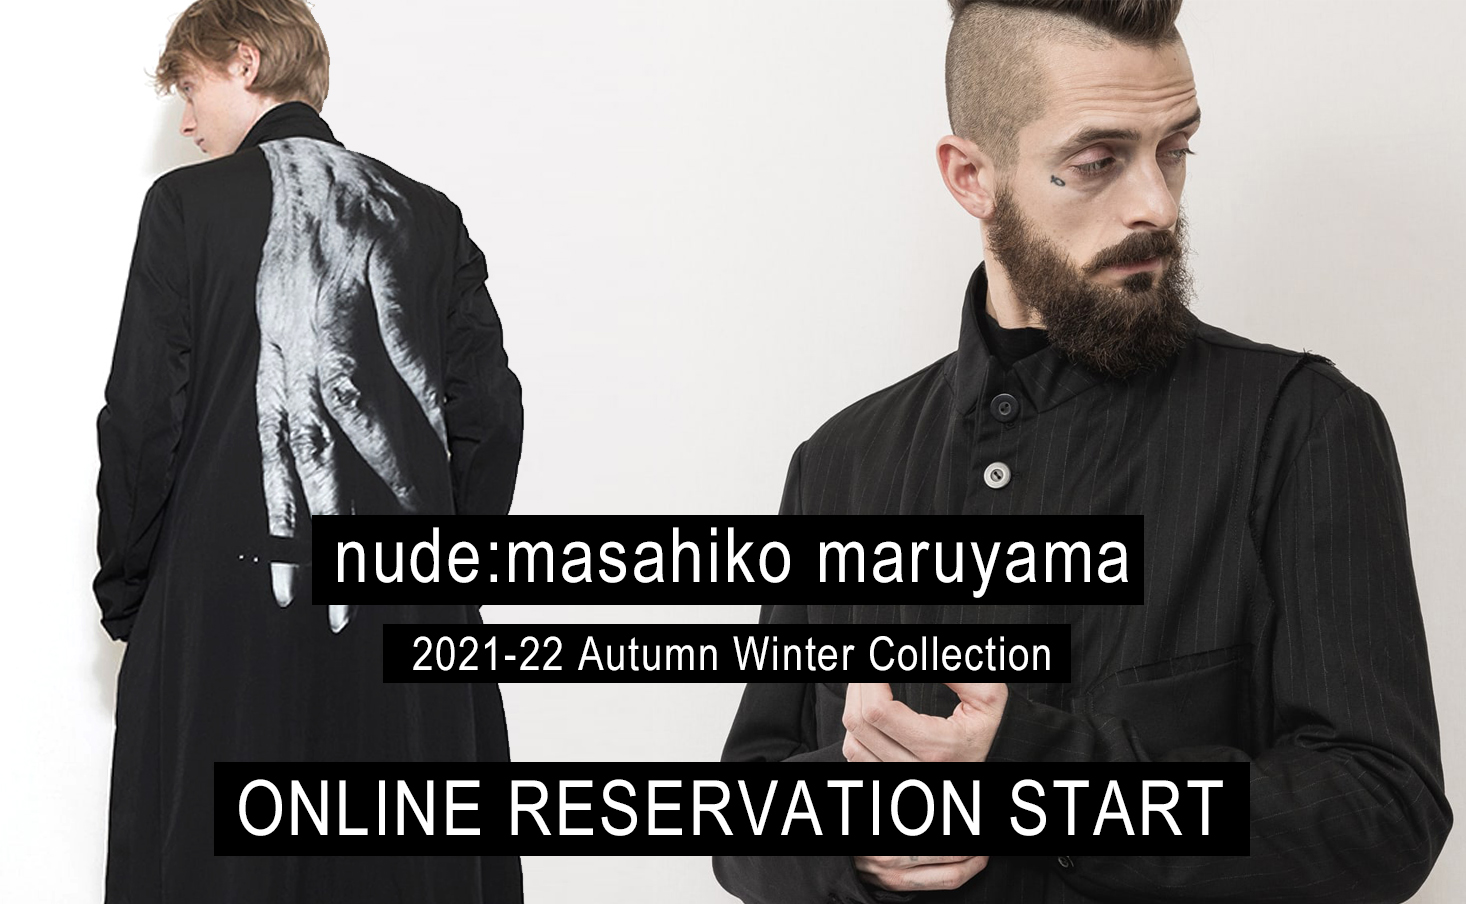 nude: masahiko maruyama 21-22 AW collection online Reservations